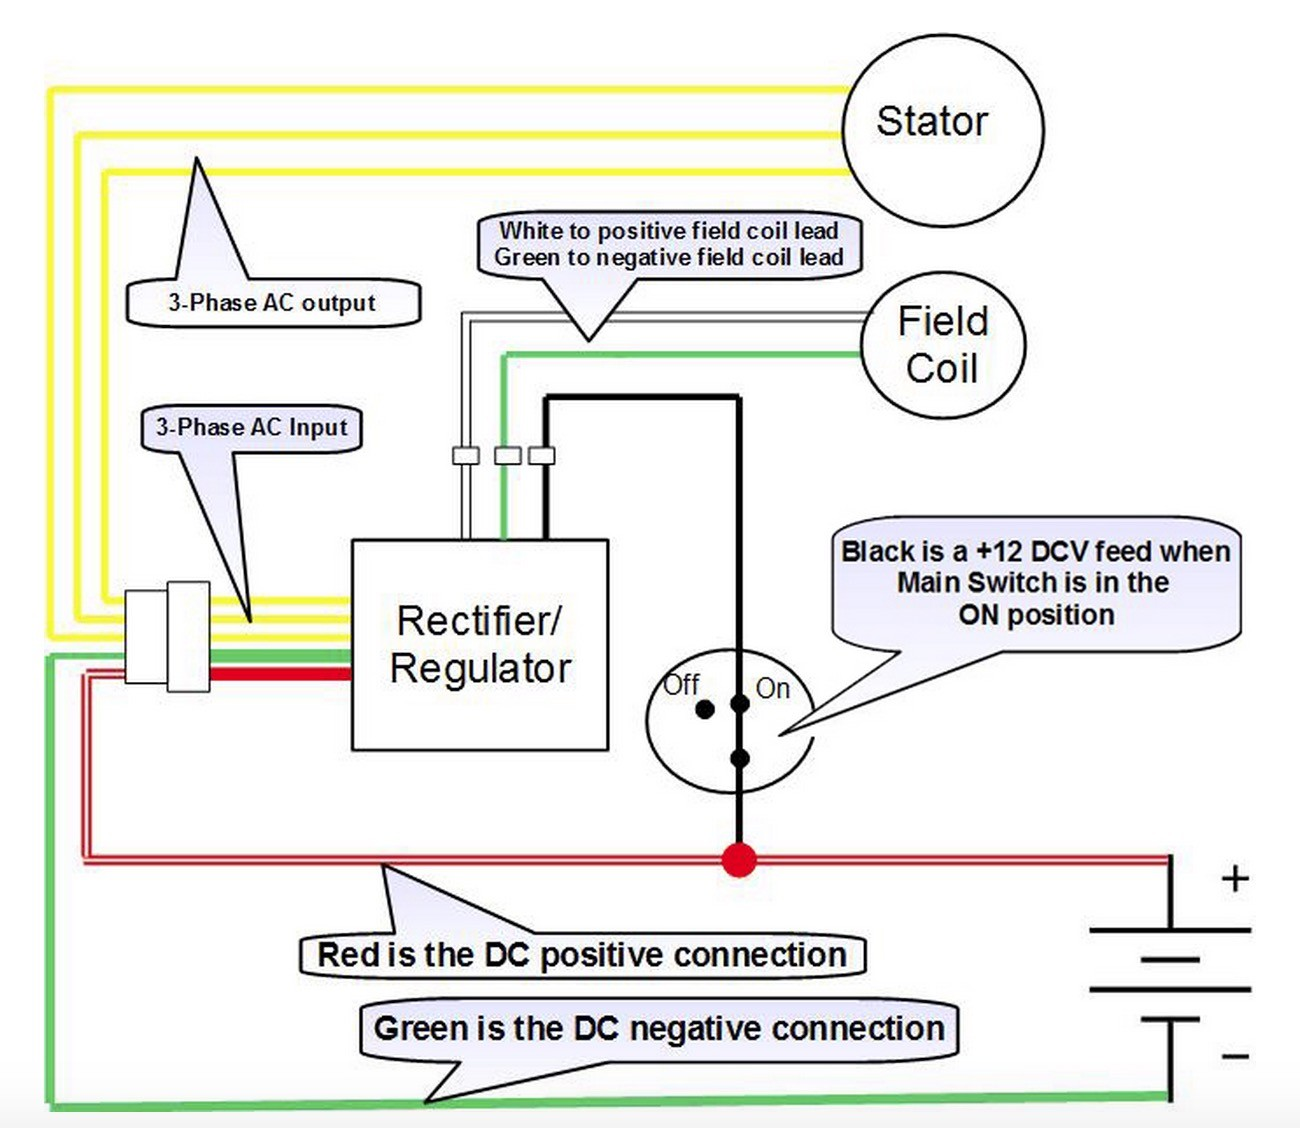 Your charging system should end up matching this diagram